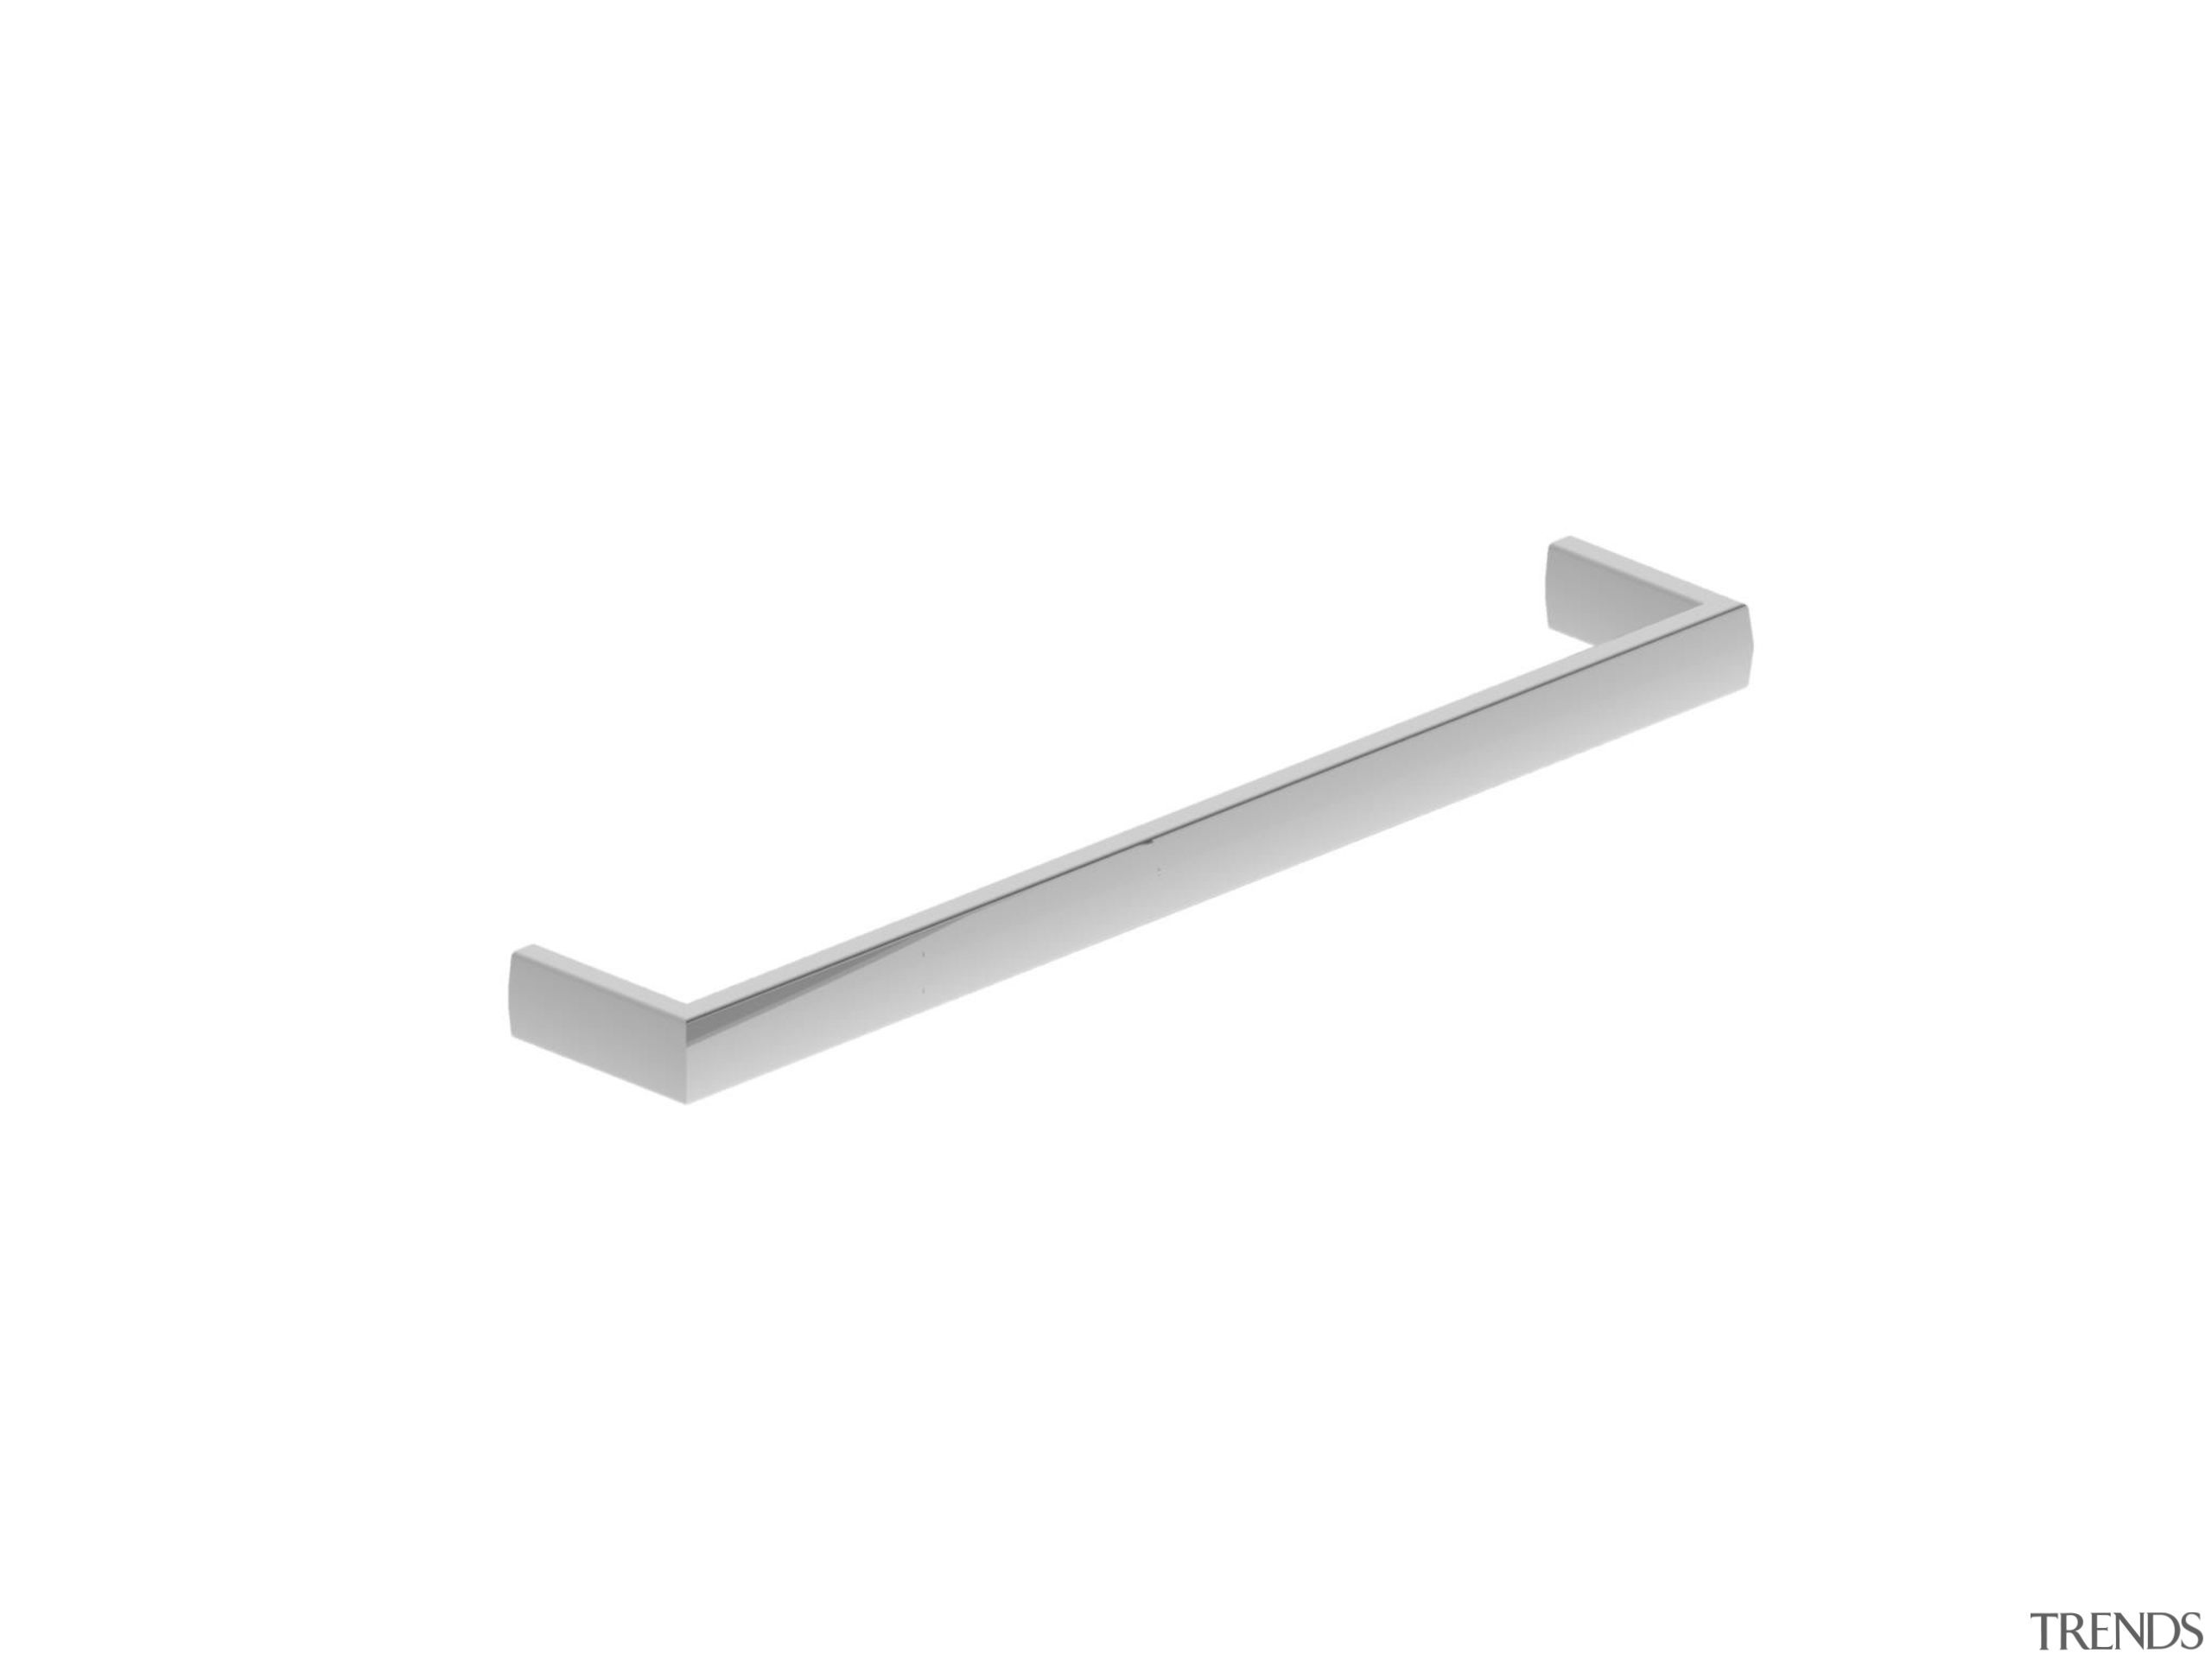 • Manufactured in Australia• Warranty 10 Years - angle, bathroom accessory, hardware accessory, line, product design, white